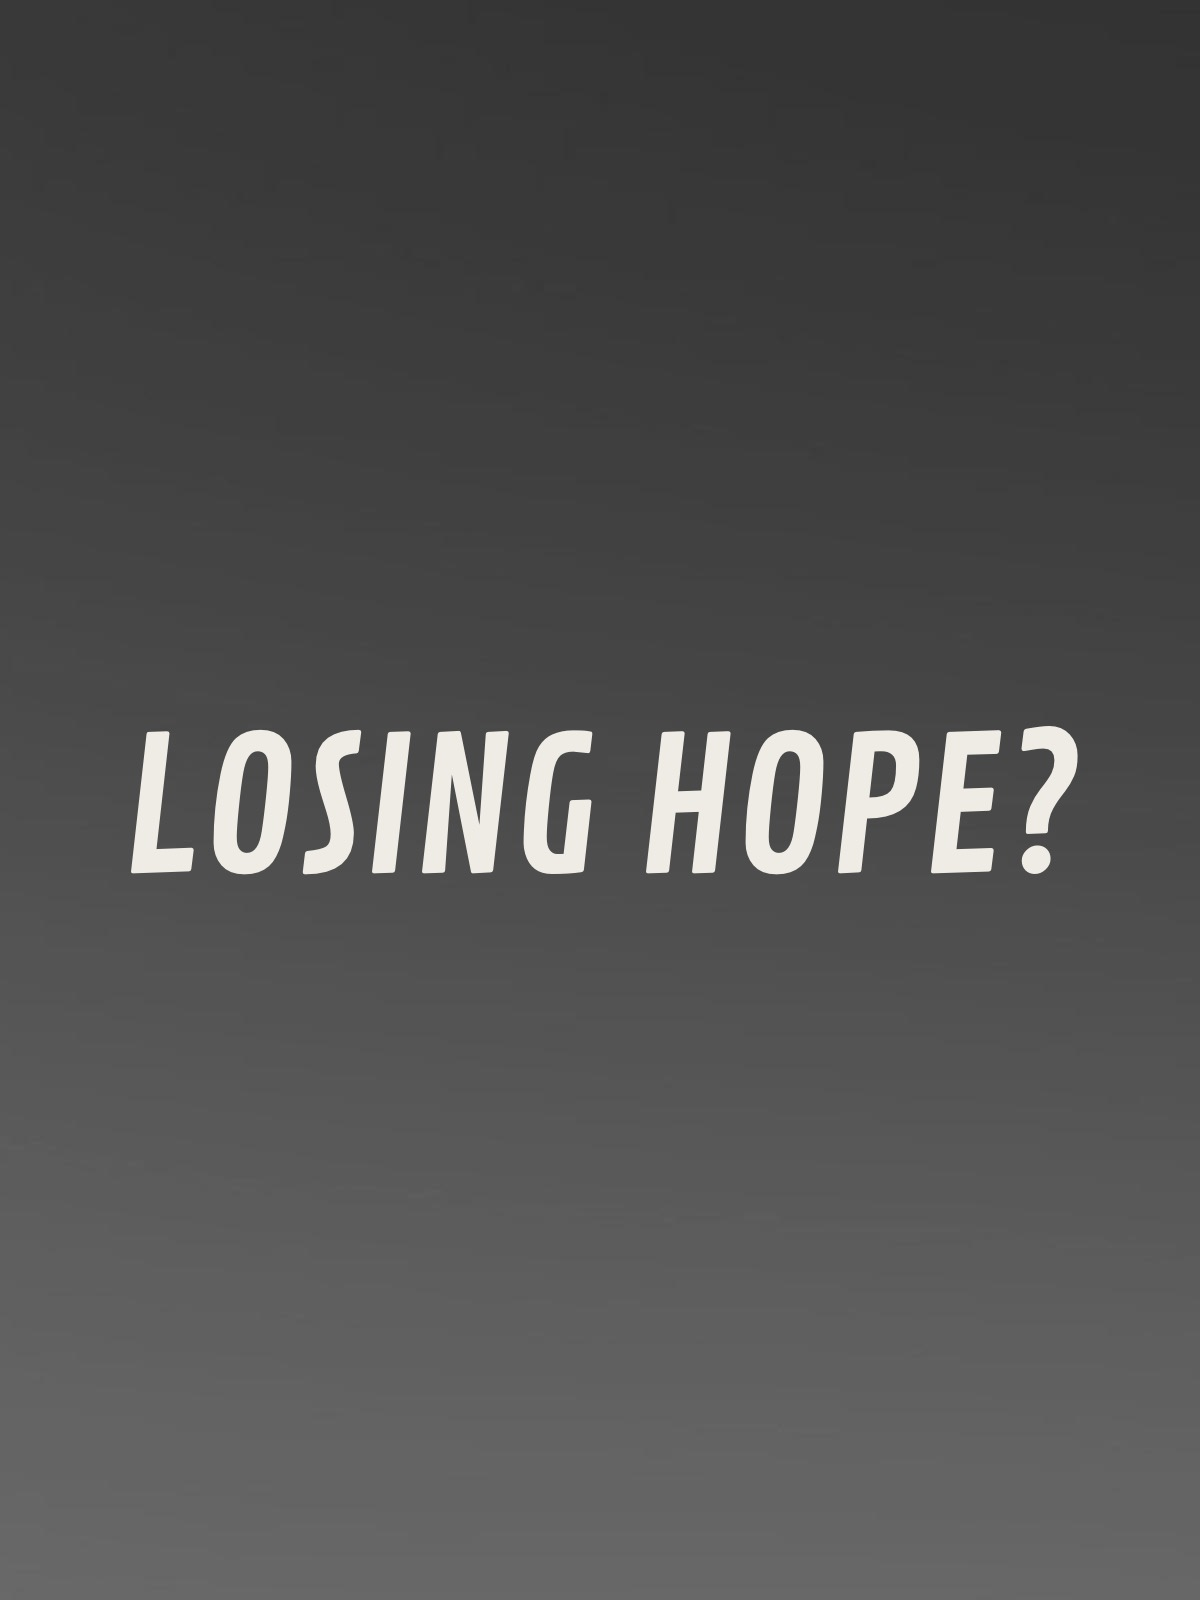 Losing hope - Coursework Sample